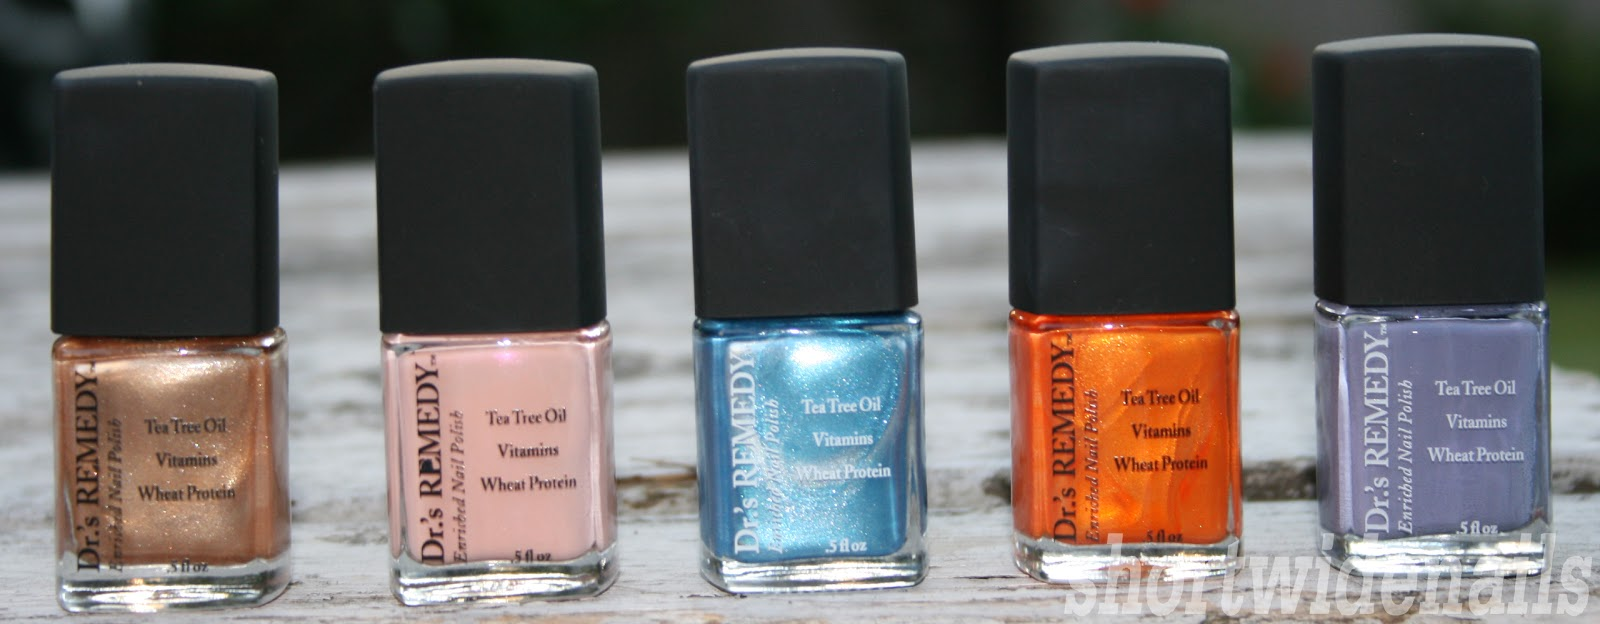 From left to right glee gold nurture nude pink bold baby blue